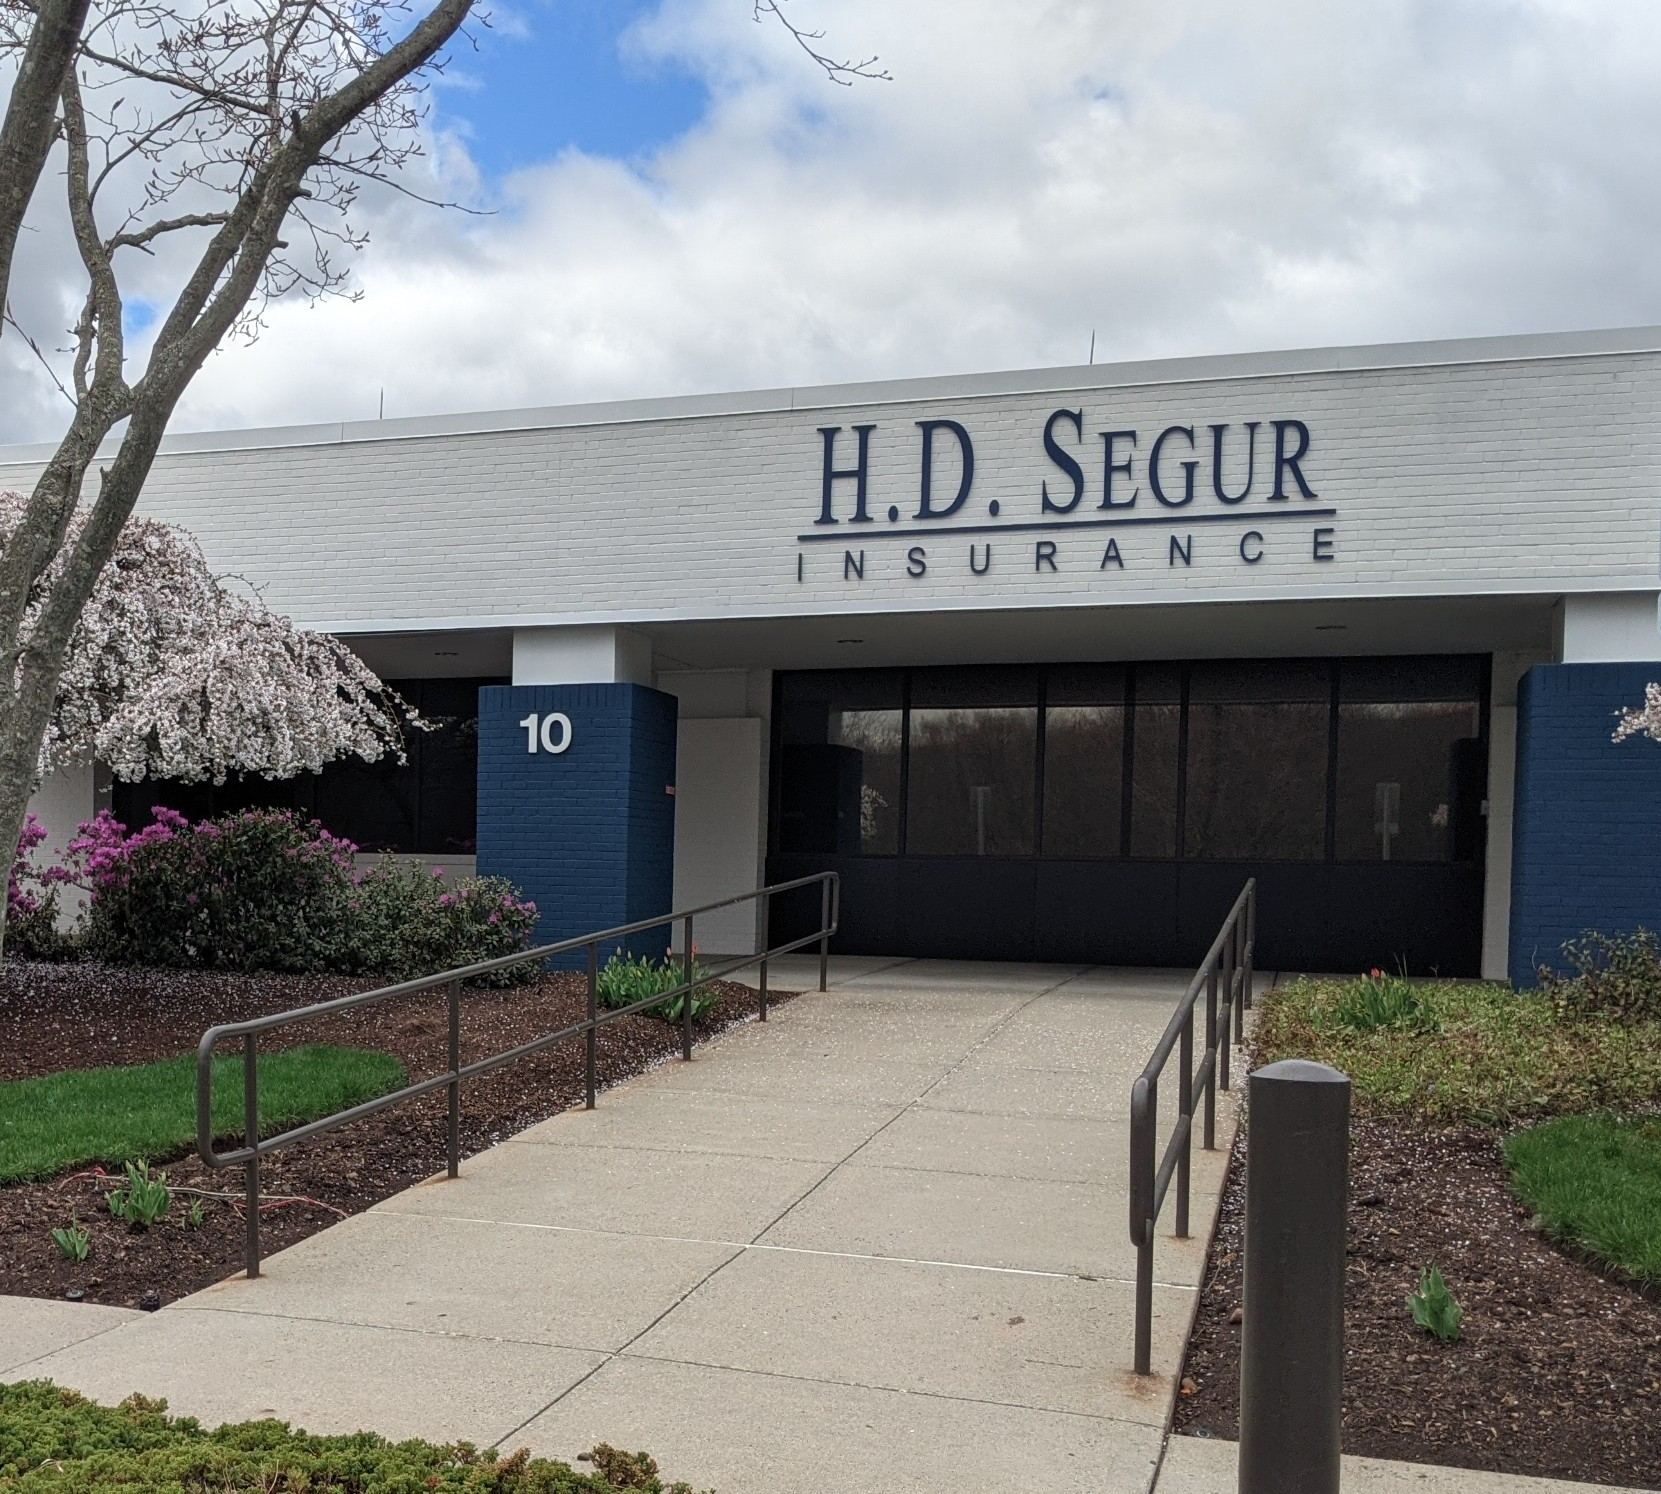 HD SEGUR signage infront of office